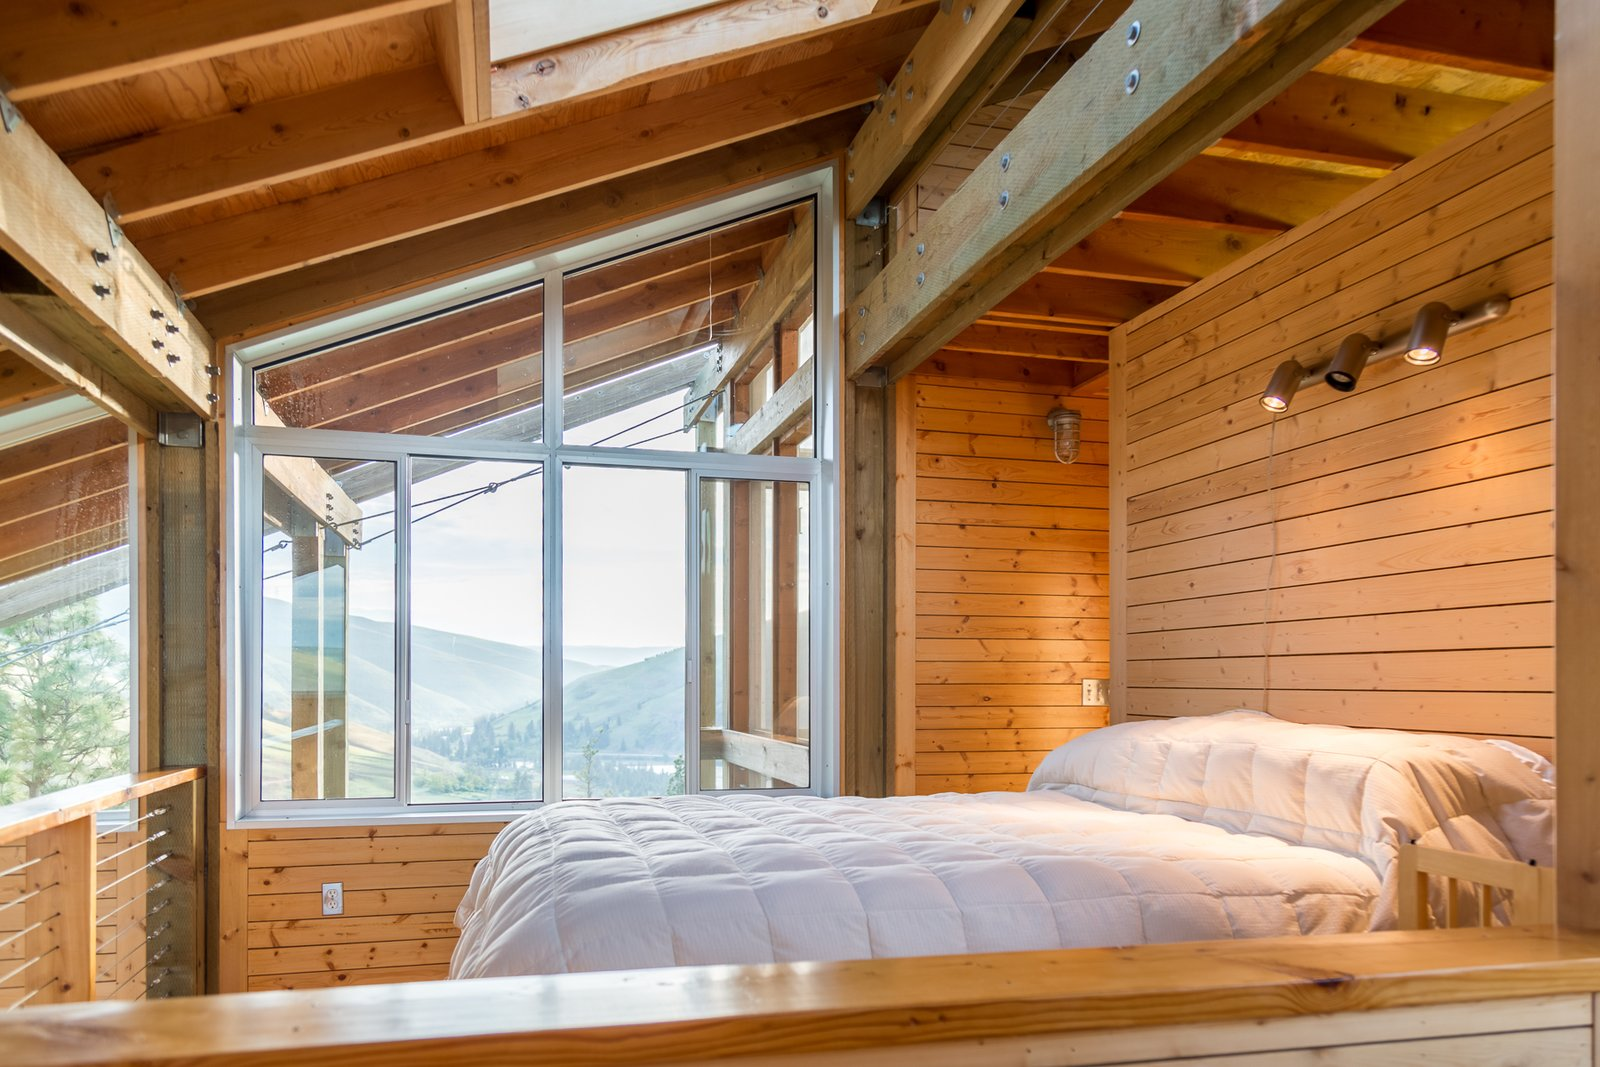 Bedroom, Track Lighting, Bed, and Wall Lighting The lofted bedroom has a snug, cabin-like feel.  Photo 9 of 12 in Own This Award-Winning Riverside Home in Idaho For $650K